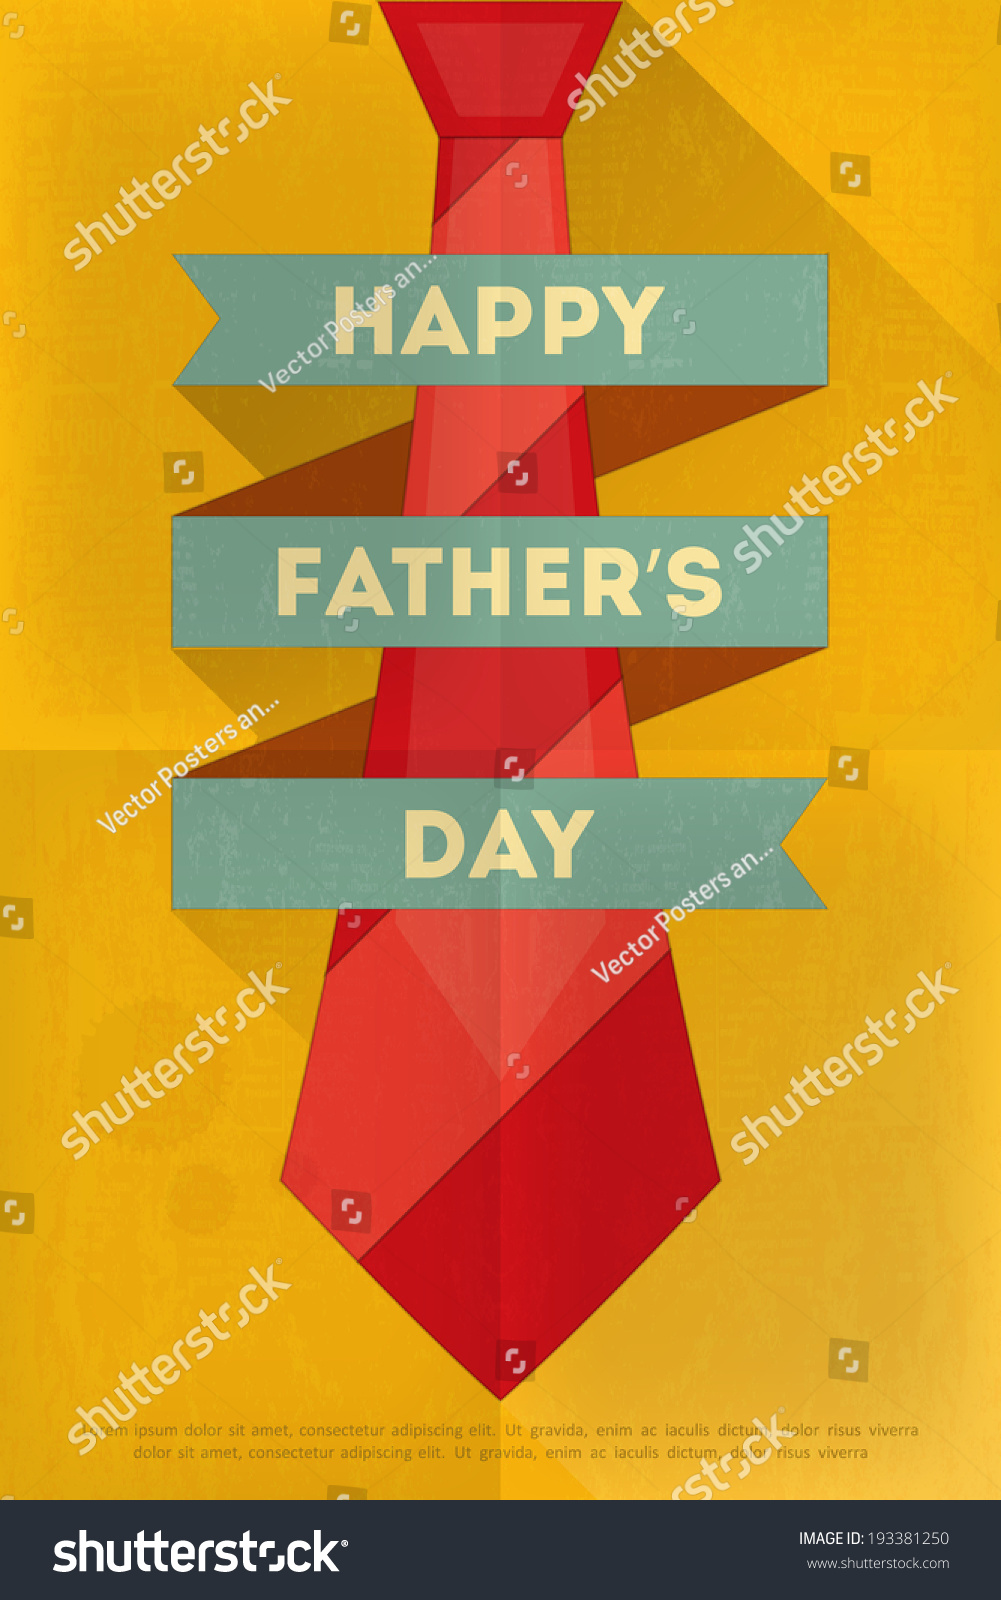 Fathers Day Poster Big Tie Flat Stock Vector 193381250 - Shutterstock